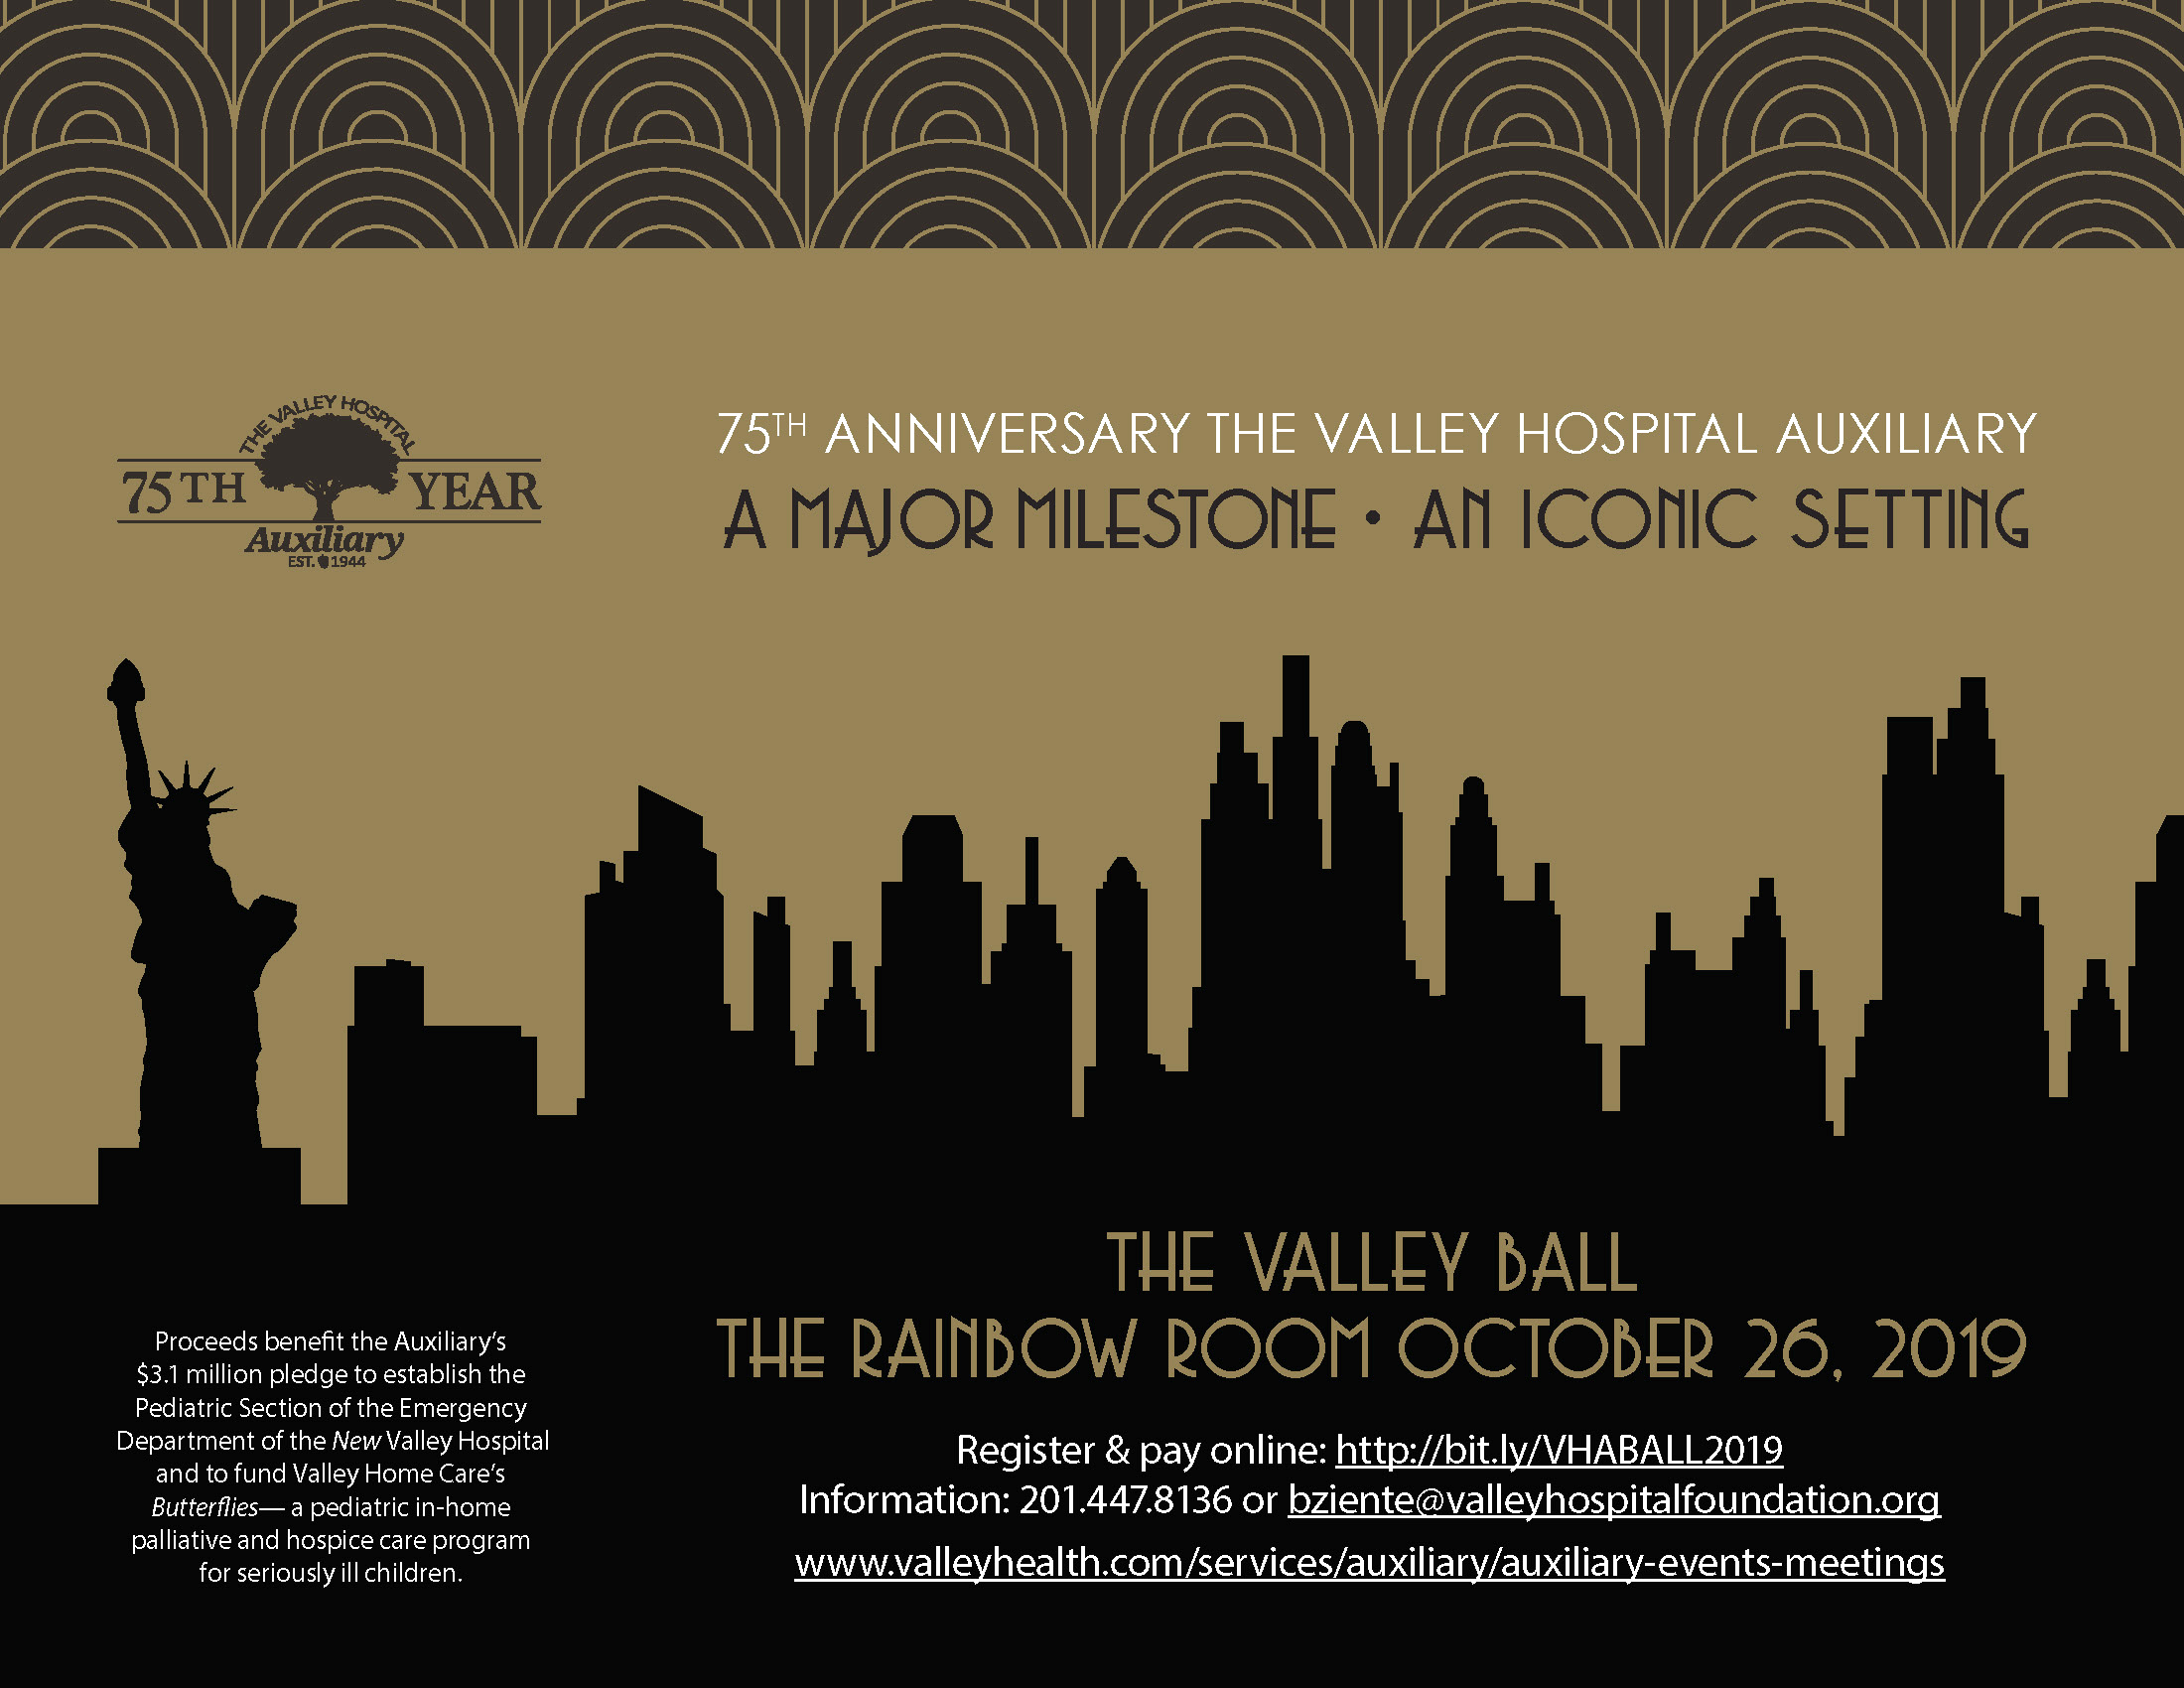 Save the Date - The 2019 Valley Ball